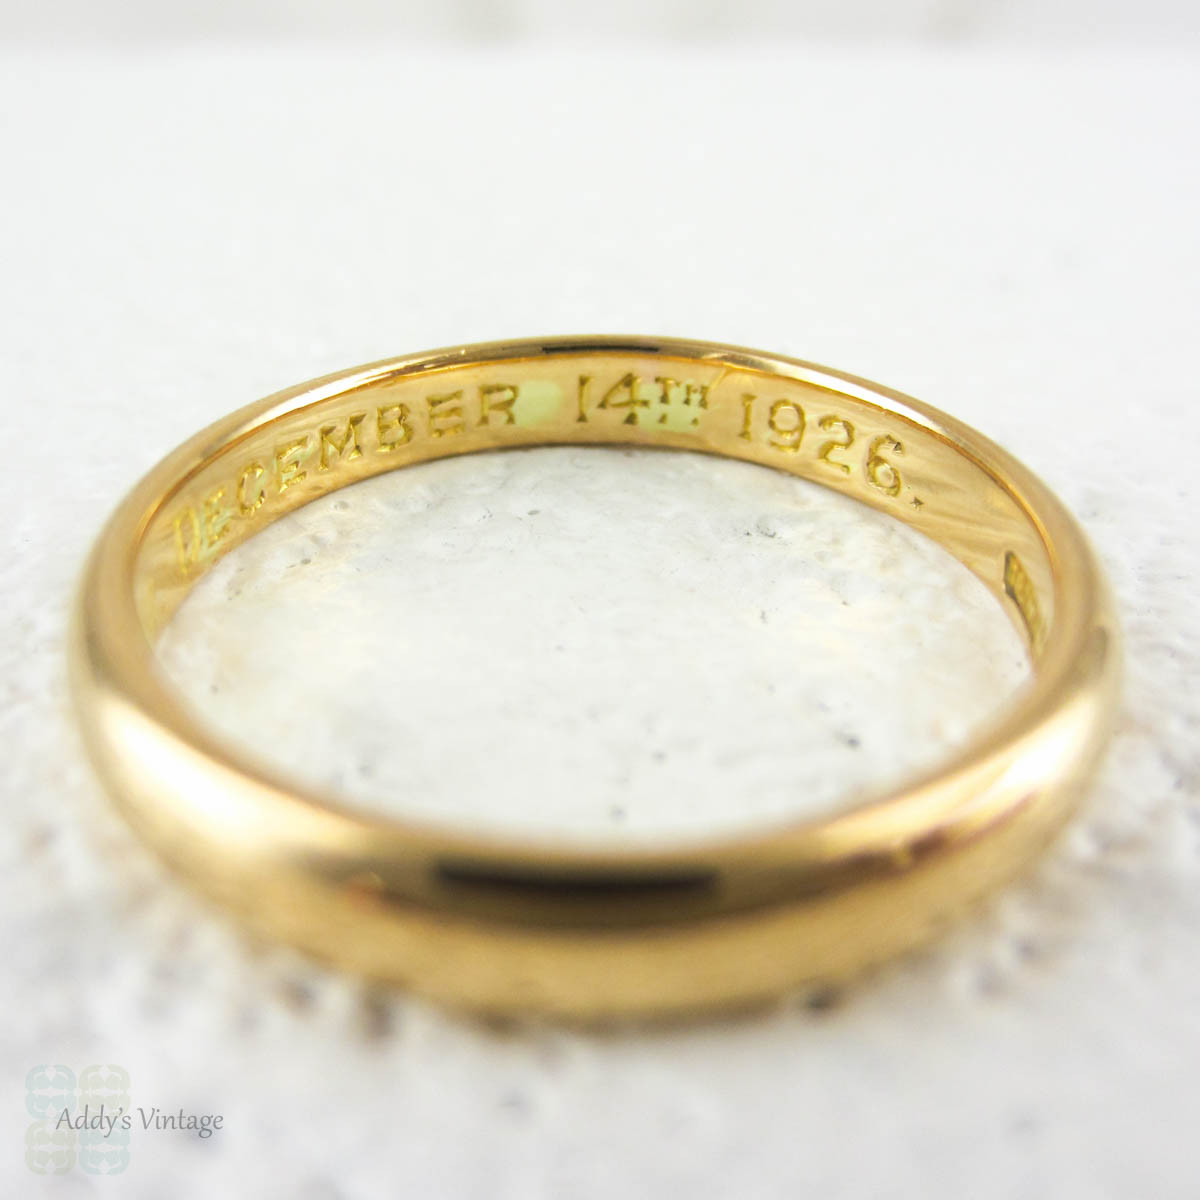 Vintage 22 Carat Yellow Gold Wedding Ring Bright Yellow Gold Court Fit Weddi